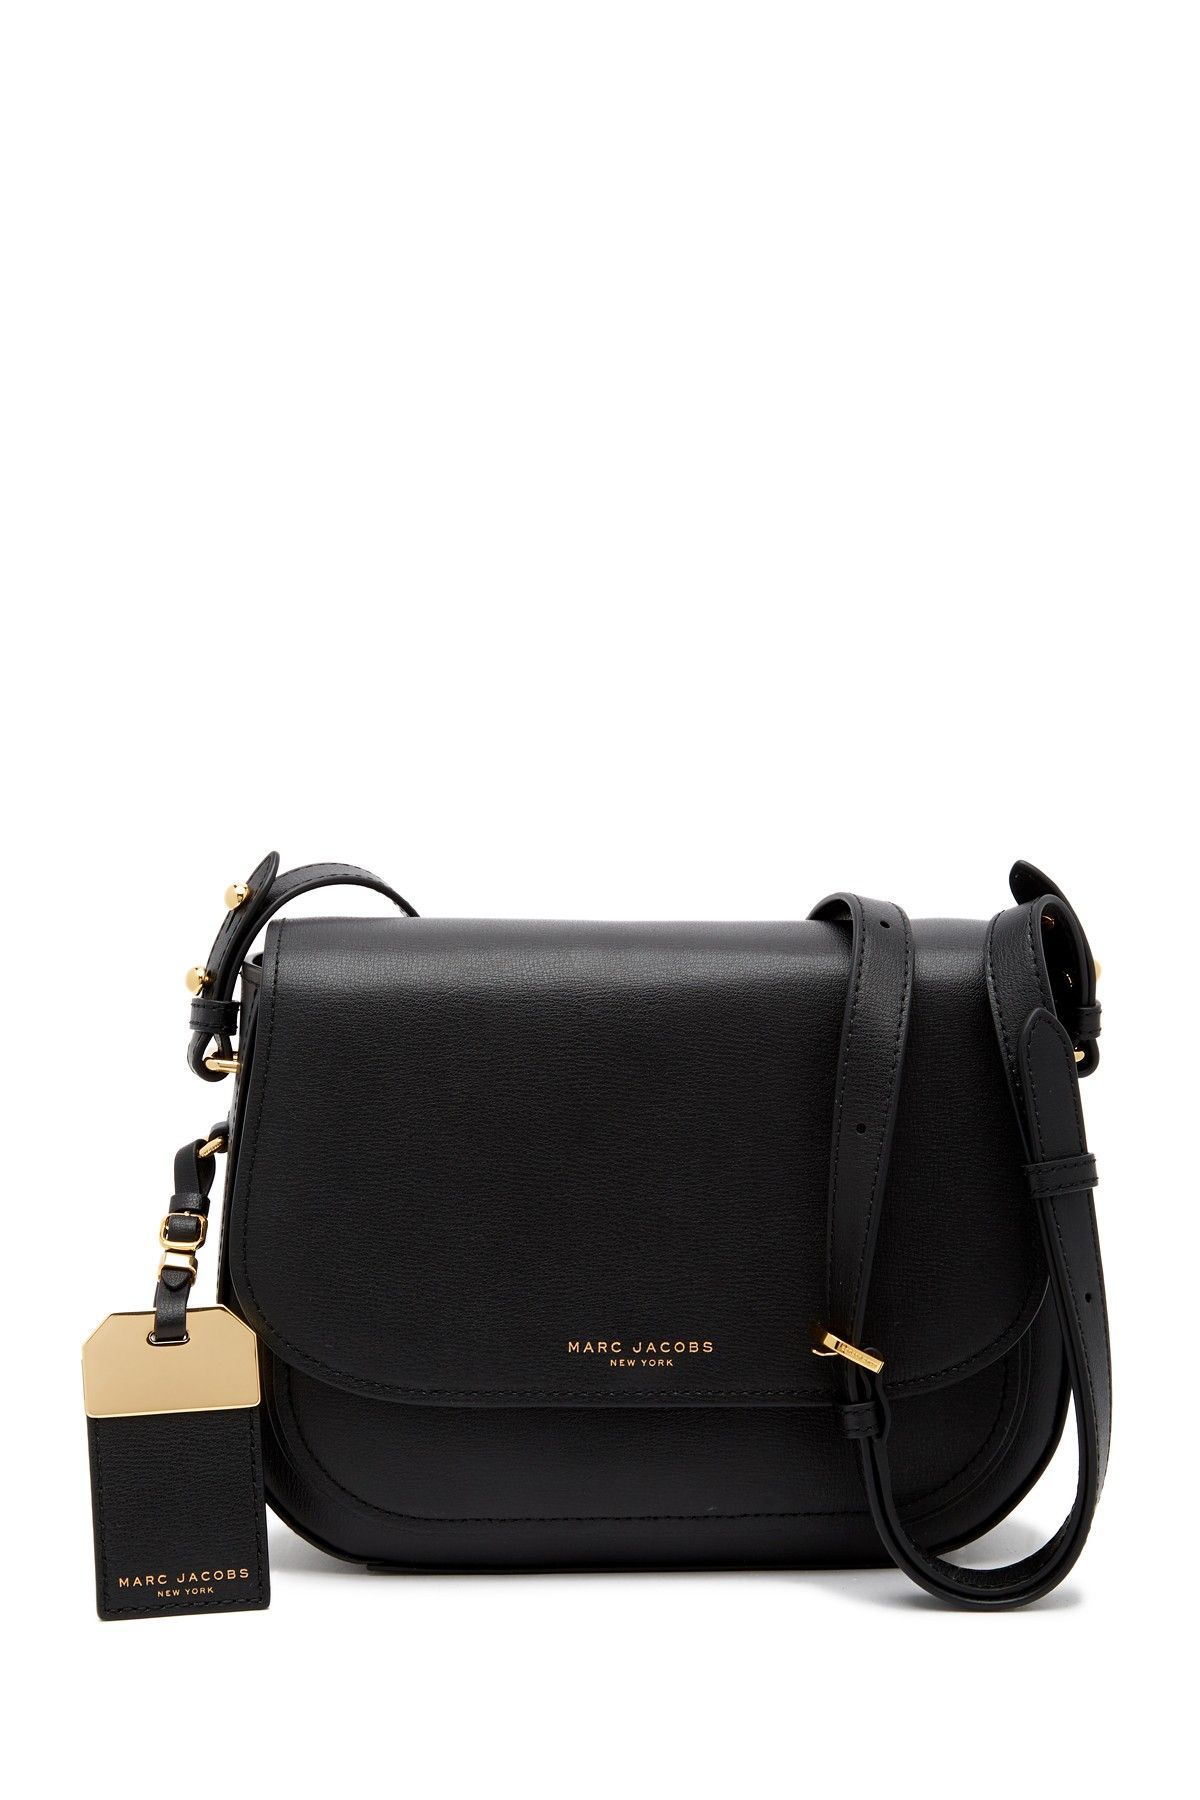 1cdc173f3f Marc Jacobs - Rider Leather Crossbody Bag is now 49% off. Free Shipping on